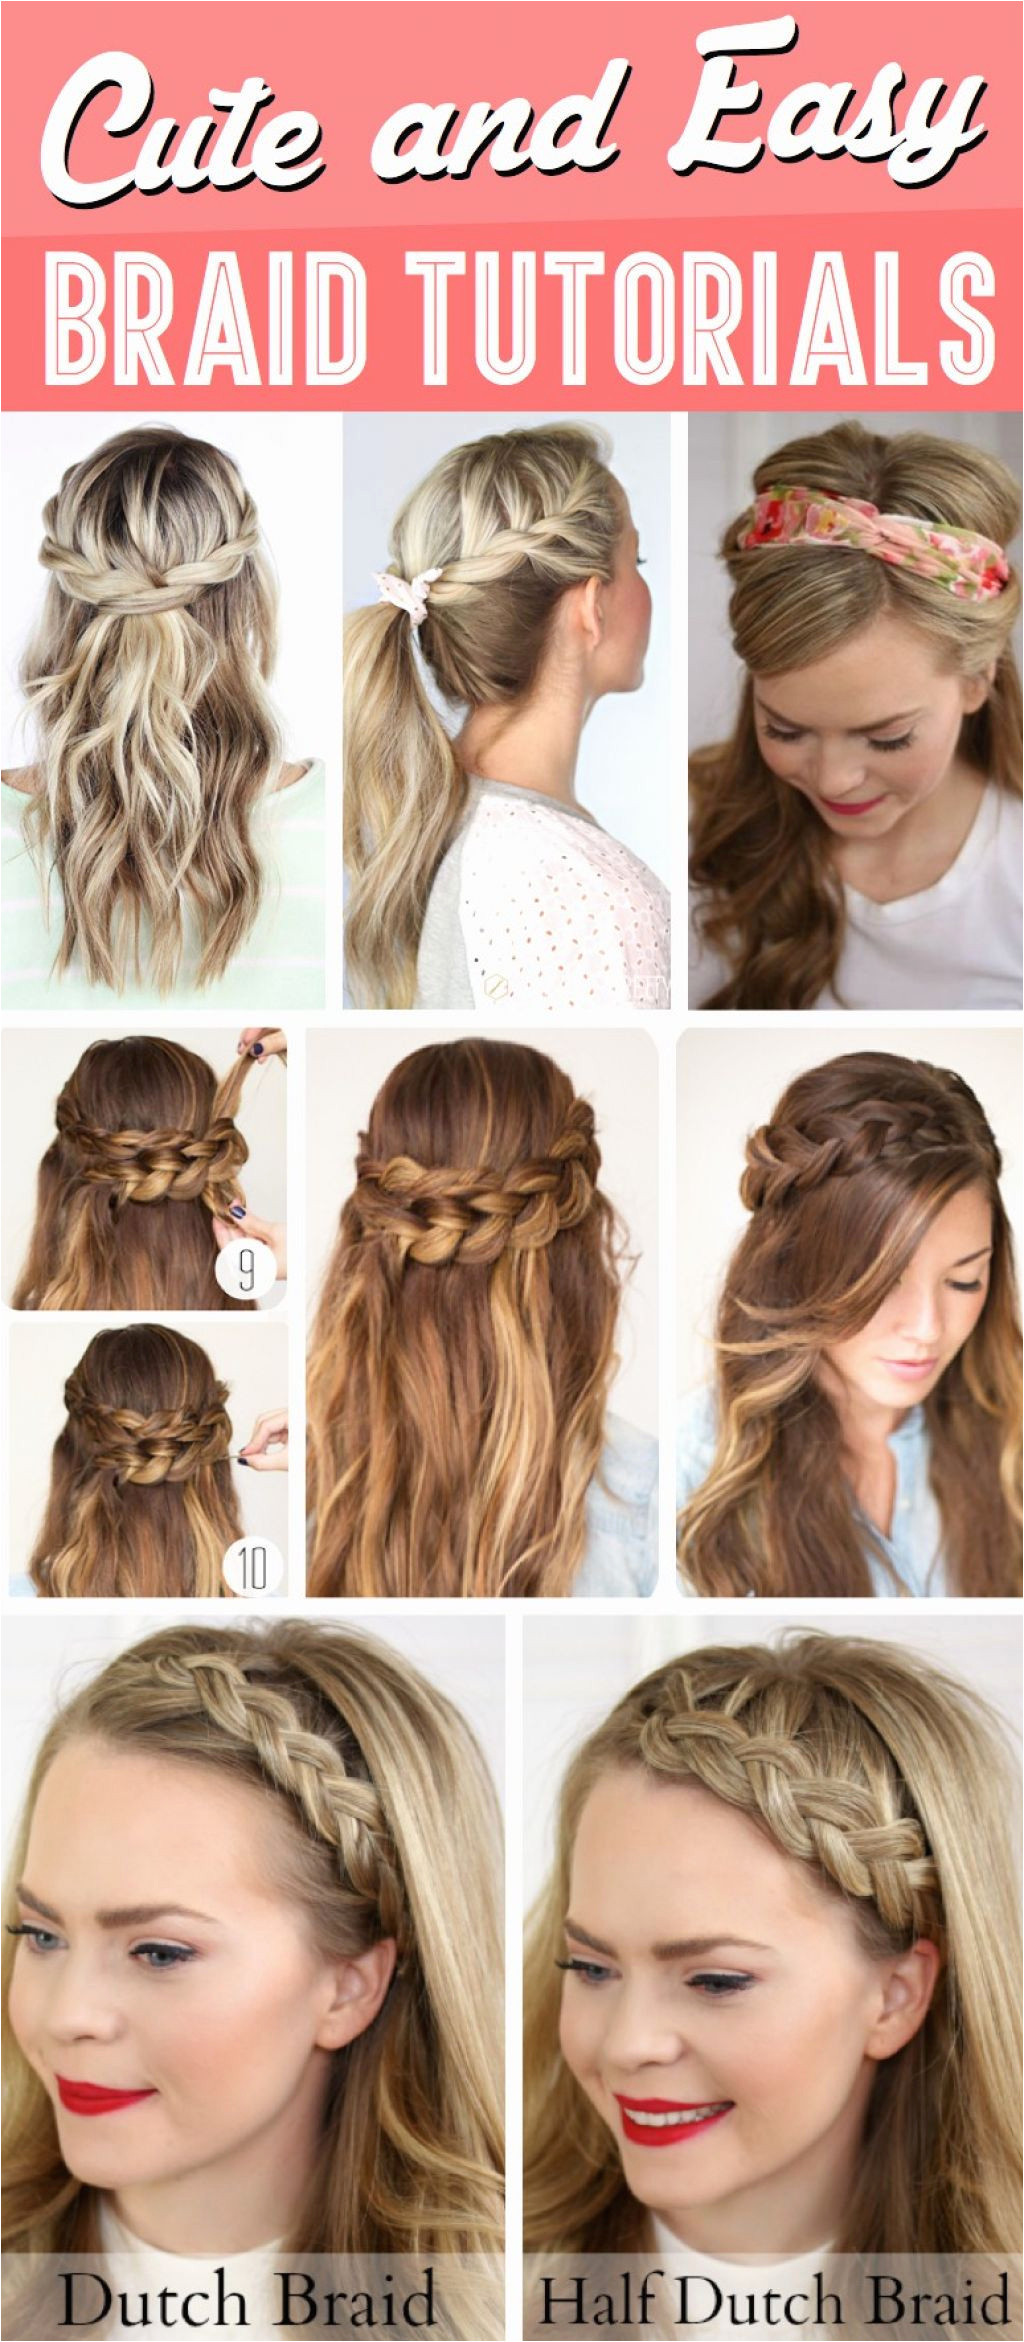 10 Easy School Hairstyles for Short Hair Cute Quick Hairstyles for School